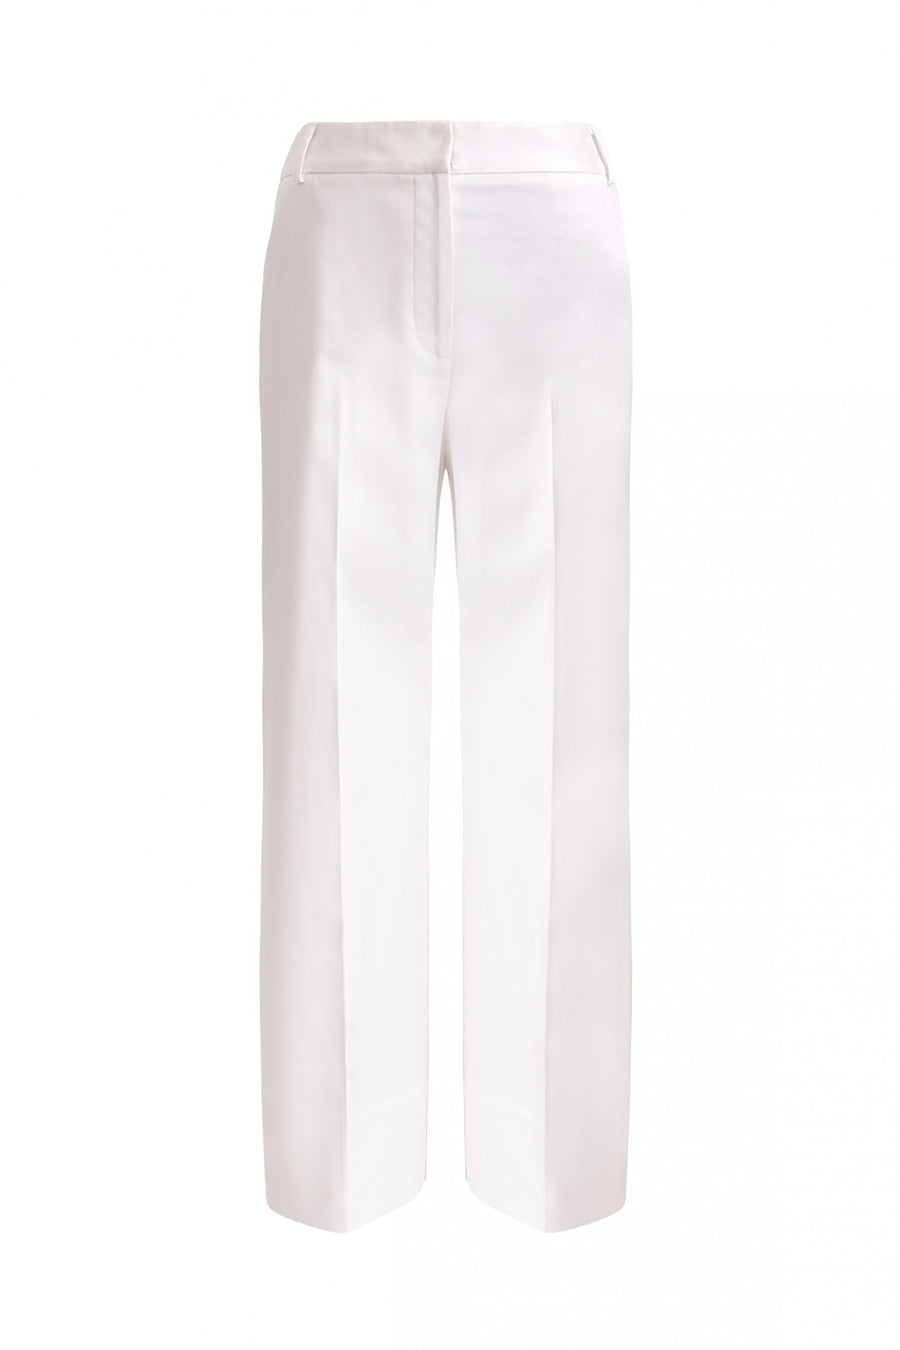 Felicity Classic Cropped Pant | FINAL SALE